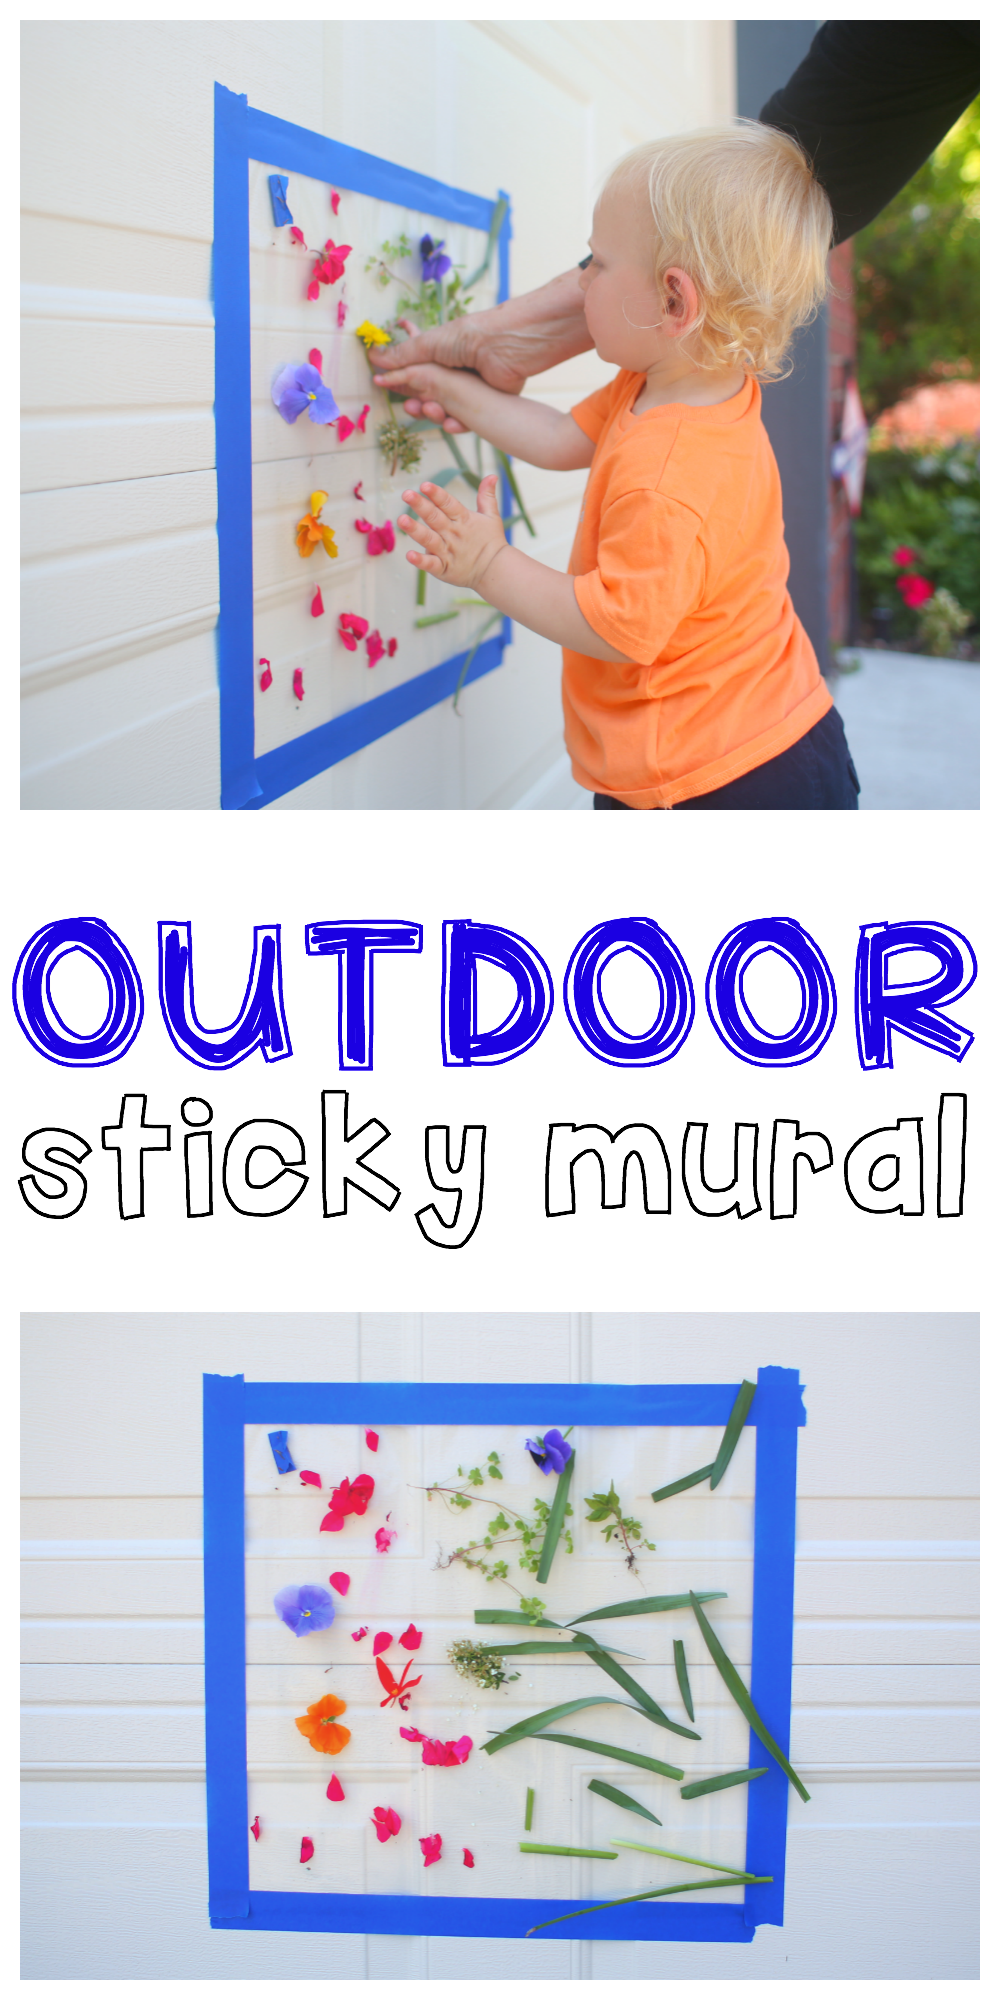 Outdoor Sticky Mural for Toddlers | I Can {teach} My Child ...